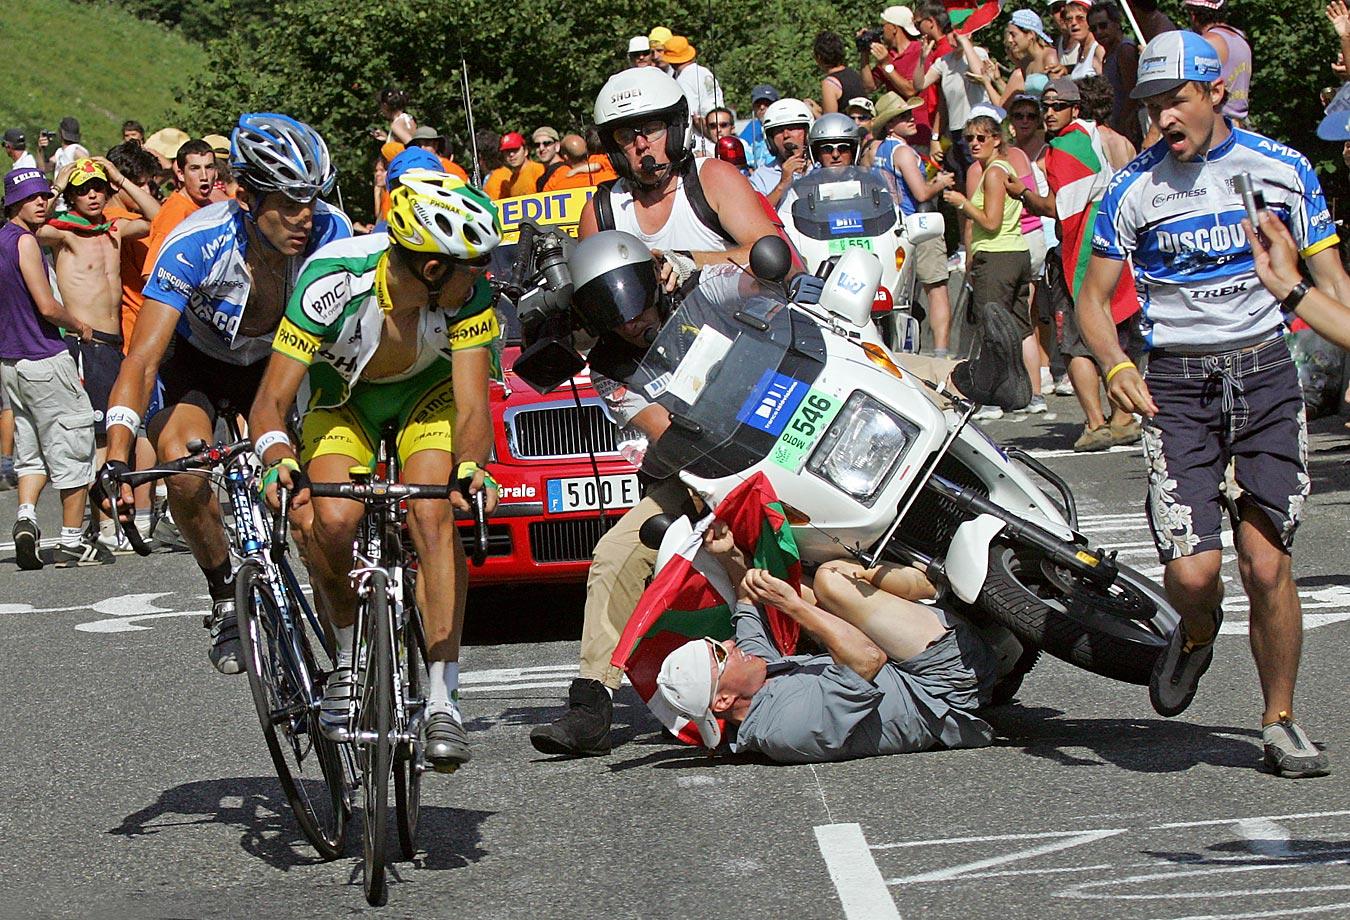 As George Hincapie dueled with Oscar Pereiro up the slopes of a Pyrenean peak called the Pla d'Adet – Lance's lieutenant won this 15th stage of the '05 Tour, but was stripped of the victory for doping – a fan got too close, and was run over by a motorcycle. The marvel is that it doesn't happen more often.